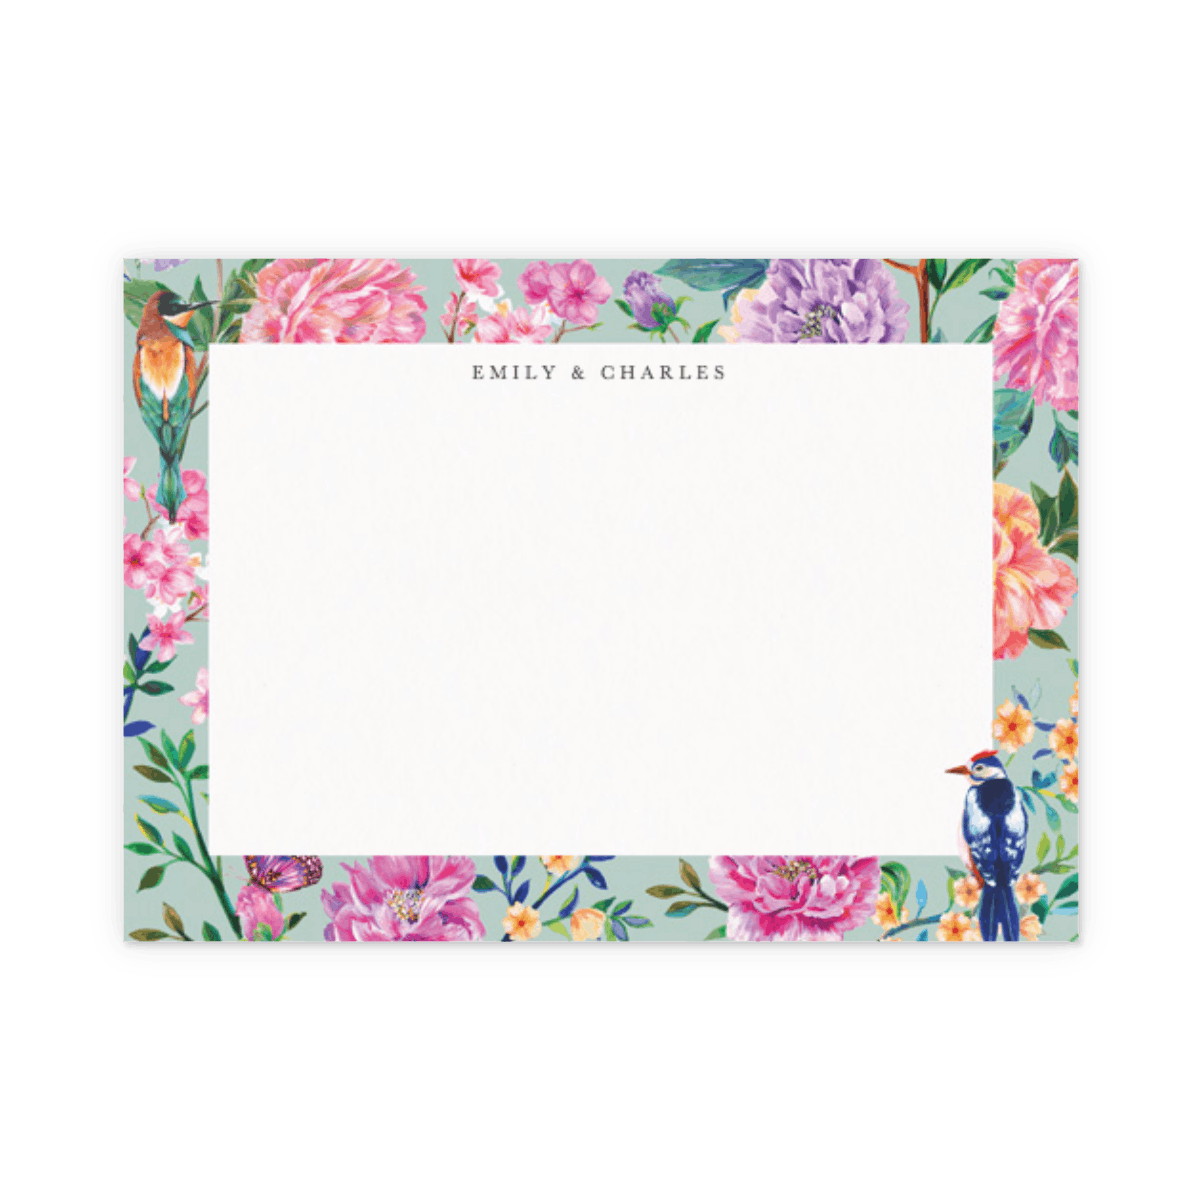 Https%3a%2f%2fwww.papier.com%2fproduct image%2f15790%2f10%2fduchess garden mint 4178 front 1484051573.png?ixlib=rb 1.1